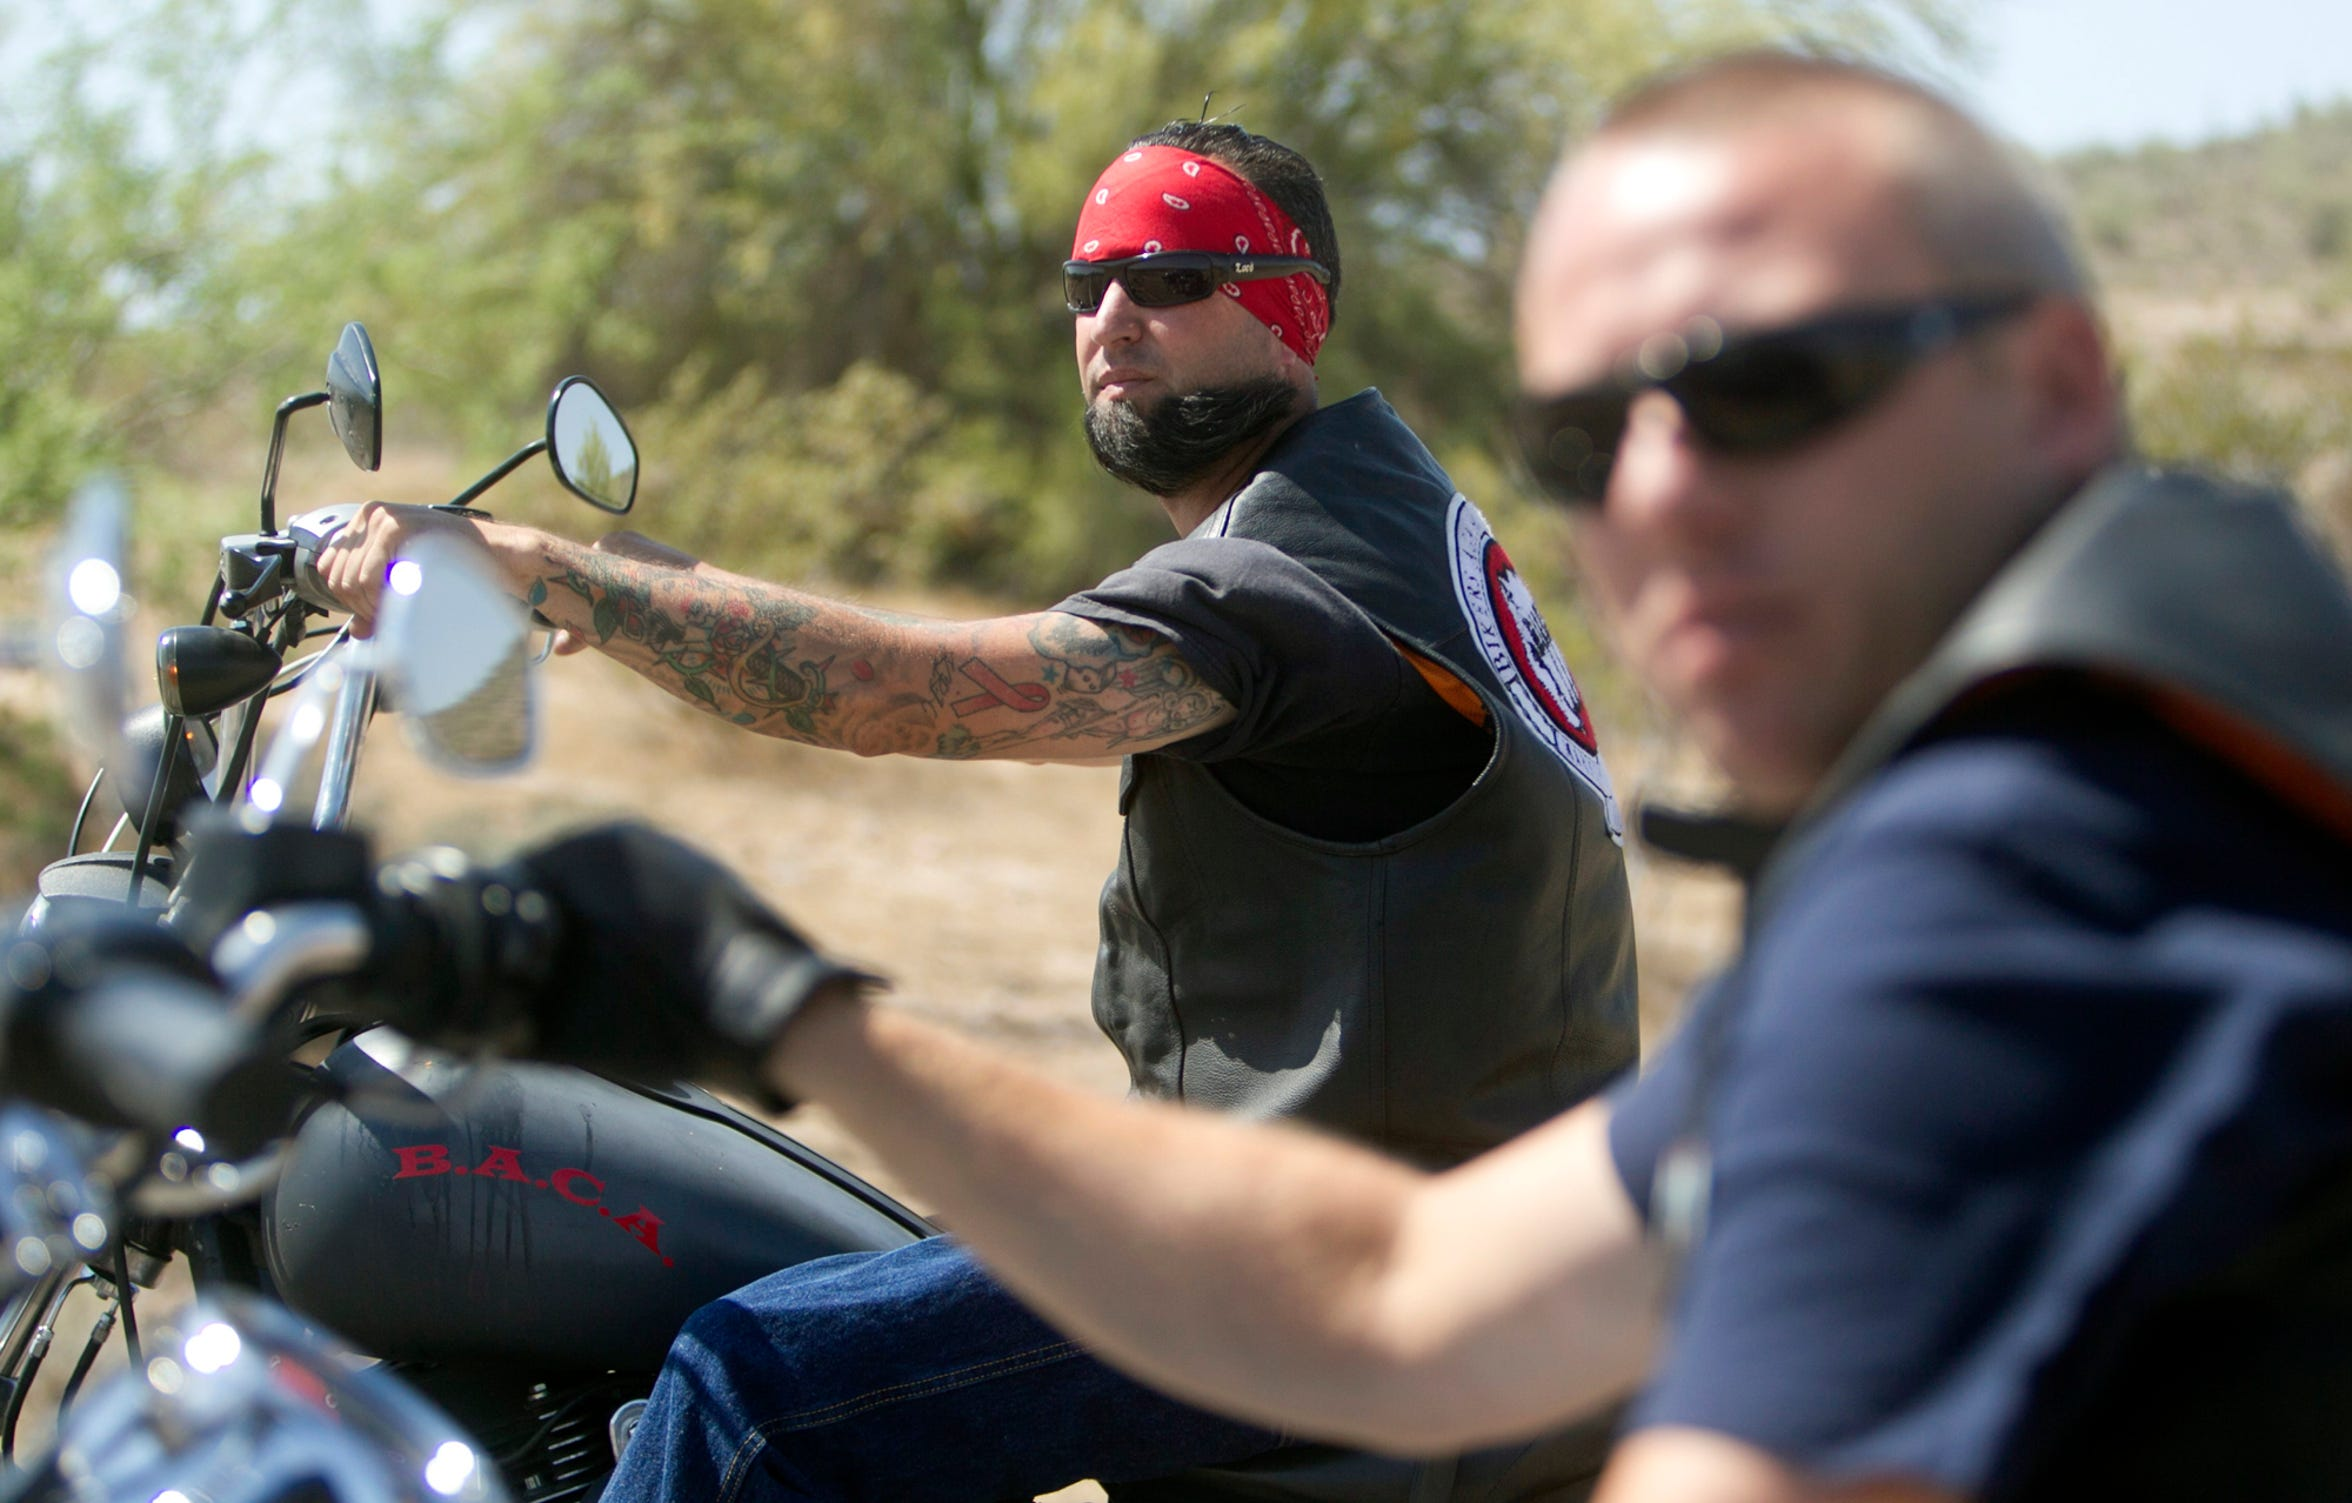 Members of the Bikers Against Child Abuse ride up to Payson.